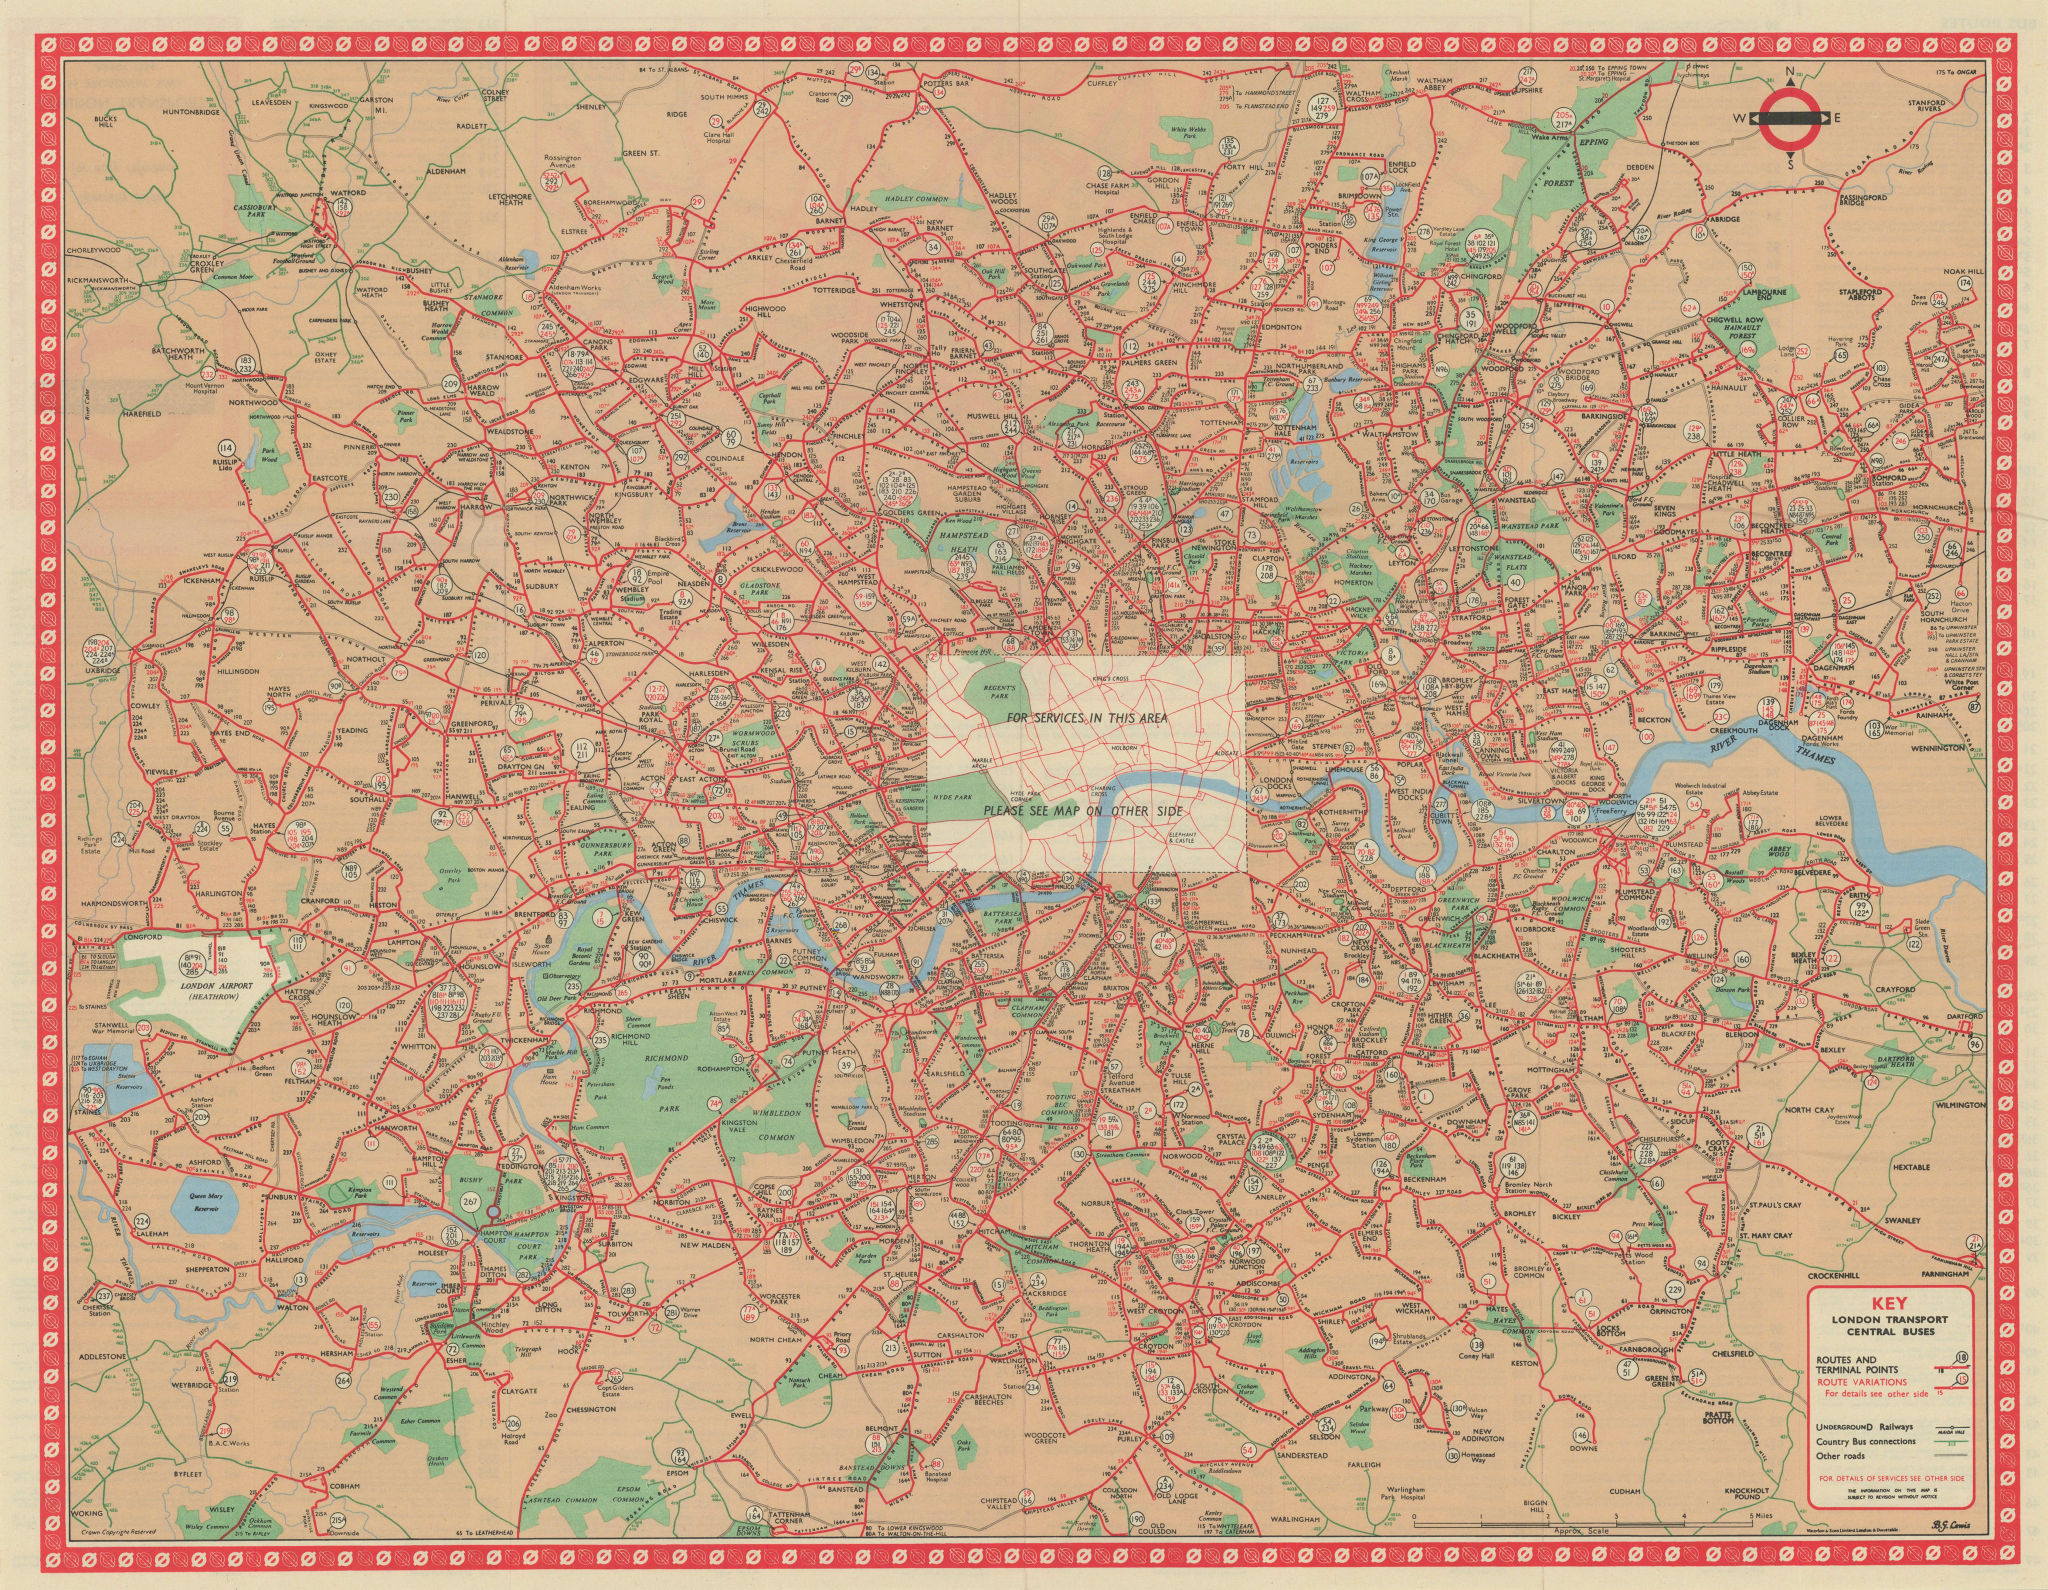 London Transport Central Buses map and list of routes. LEWIS #1 1966 old